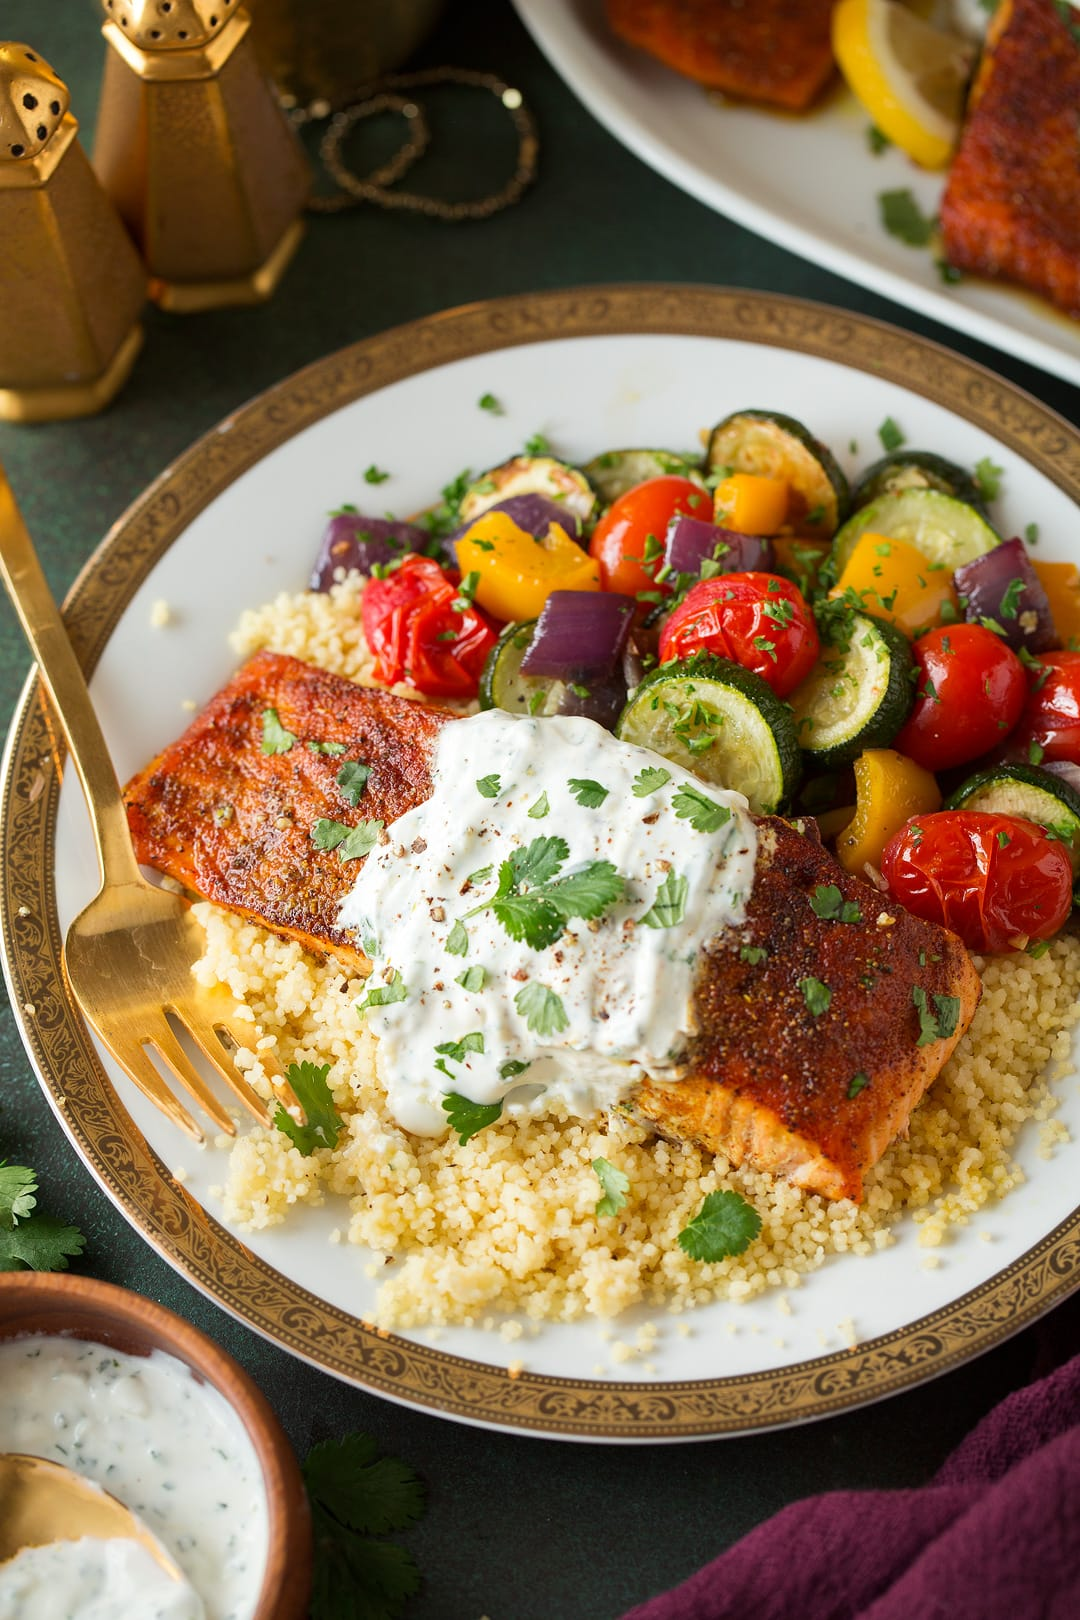 Moroccan Spiced Salmon with Lemon Yogurt Sauce